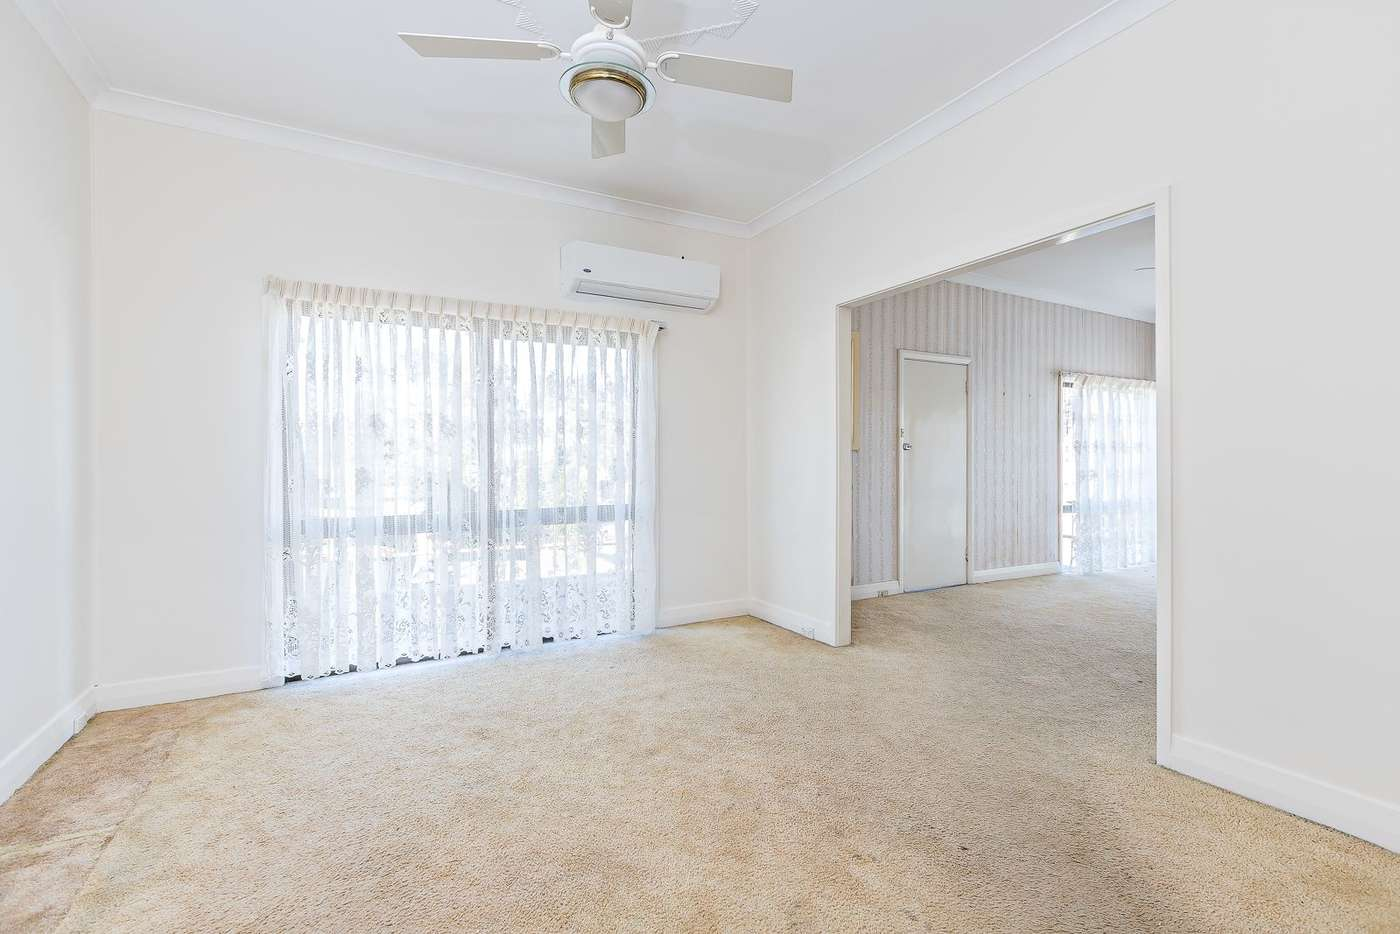 Seventh view of Homely house listing, 7 Charles Street, Charlestown NSW 2290